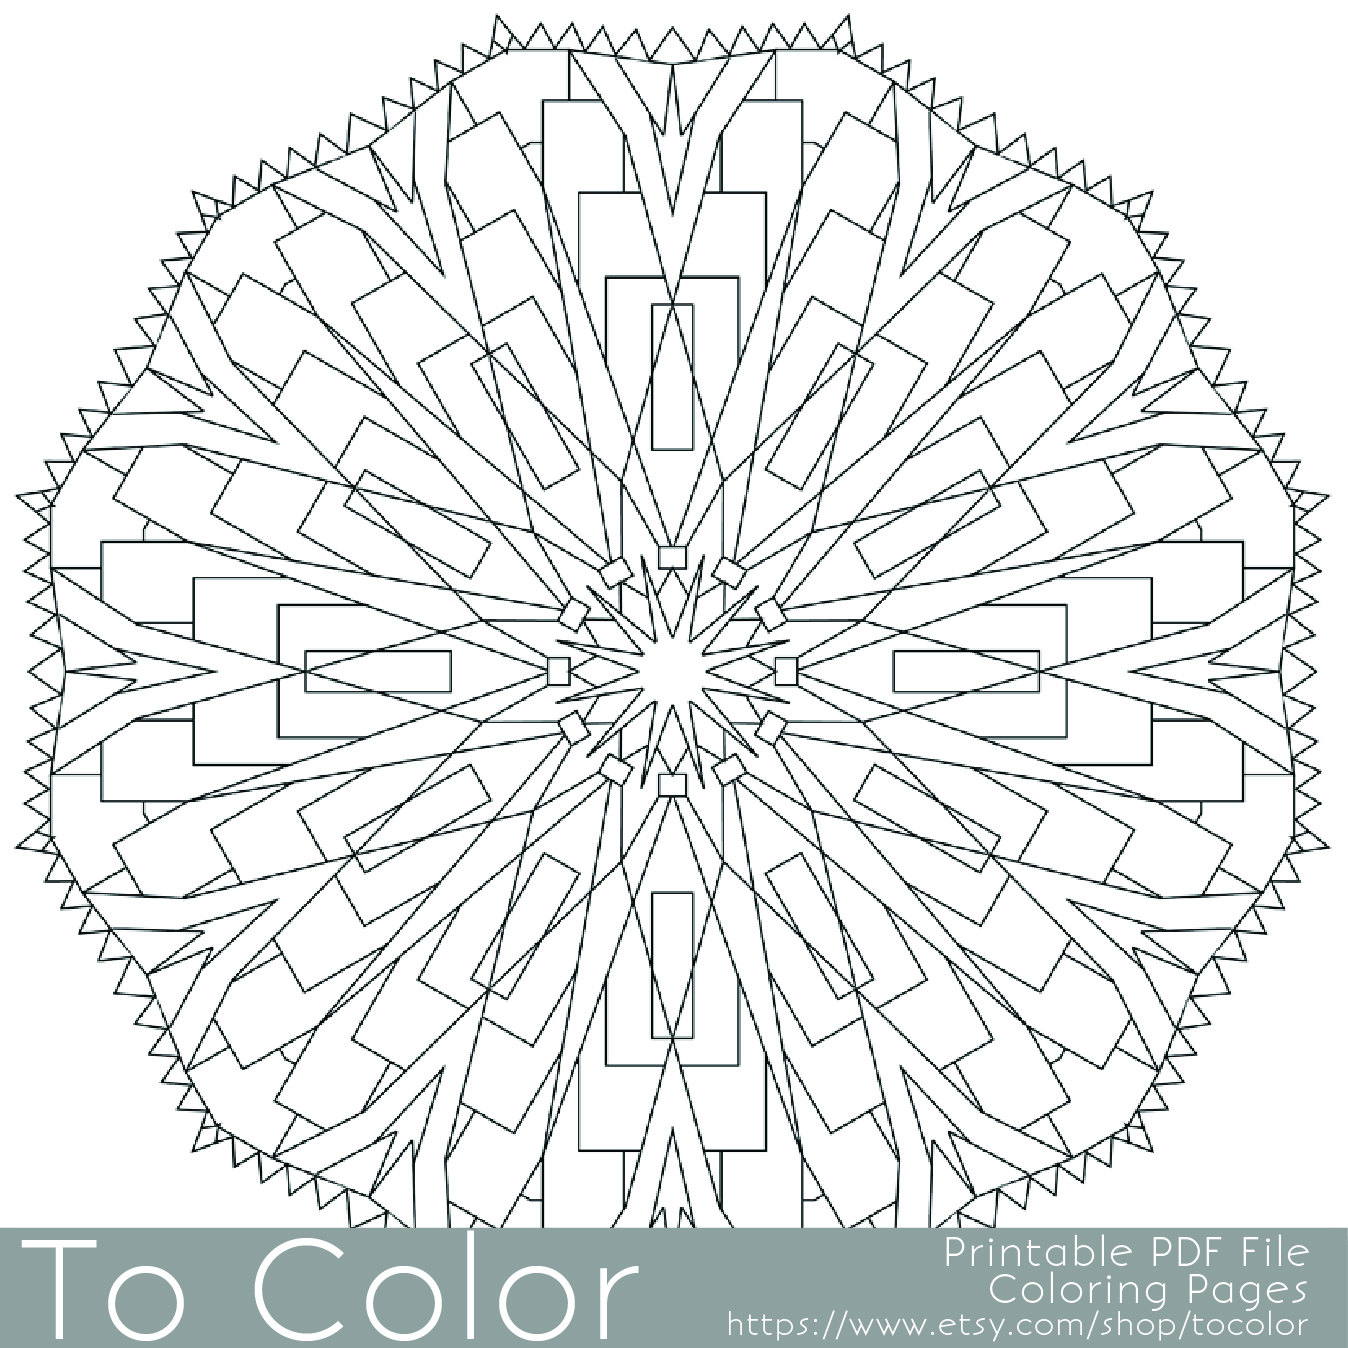 1348x1348 Detailed Printable Coloring Pages For Adults, Gel Pens Mandala